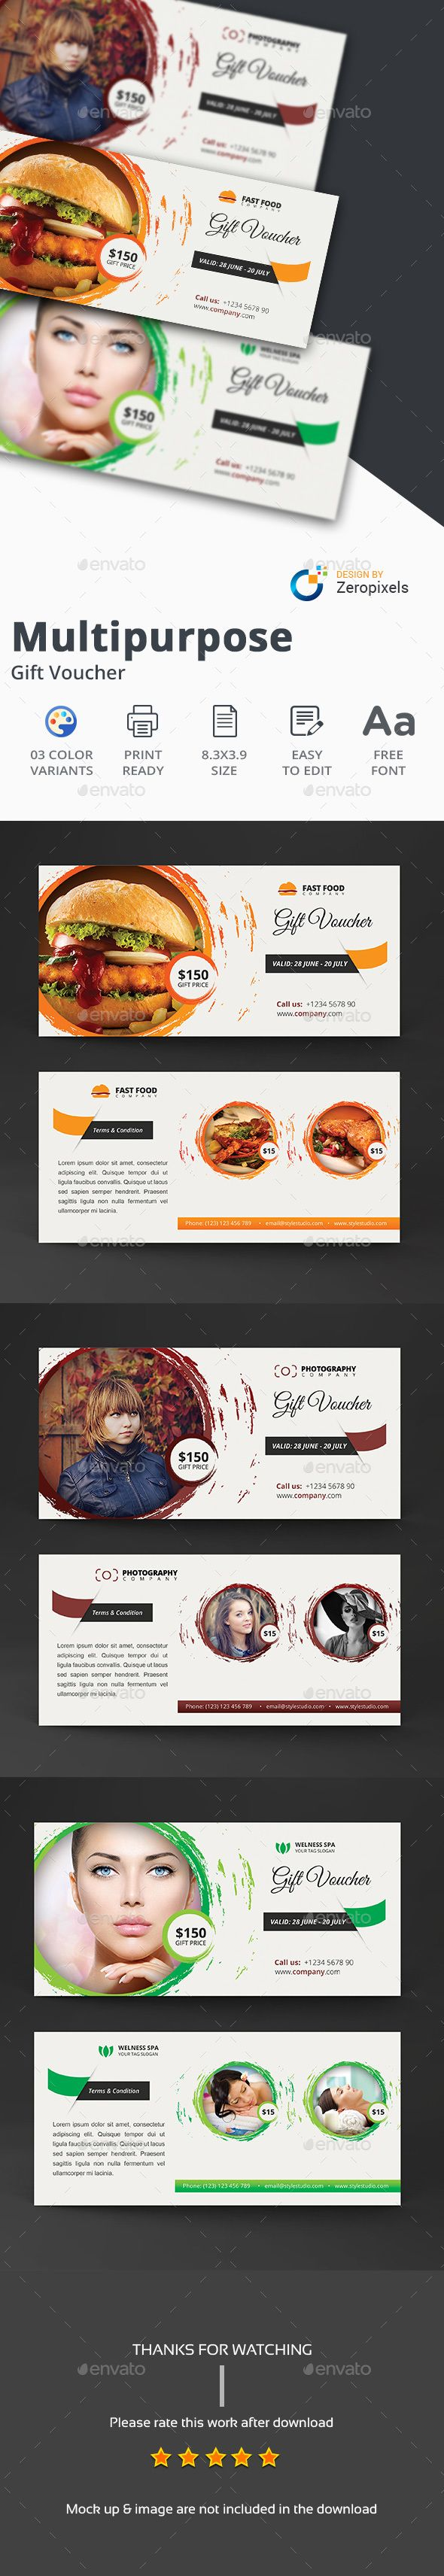 Multipurpose Gift Card Certificate  Voucher Design Template